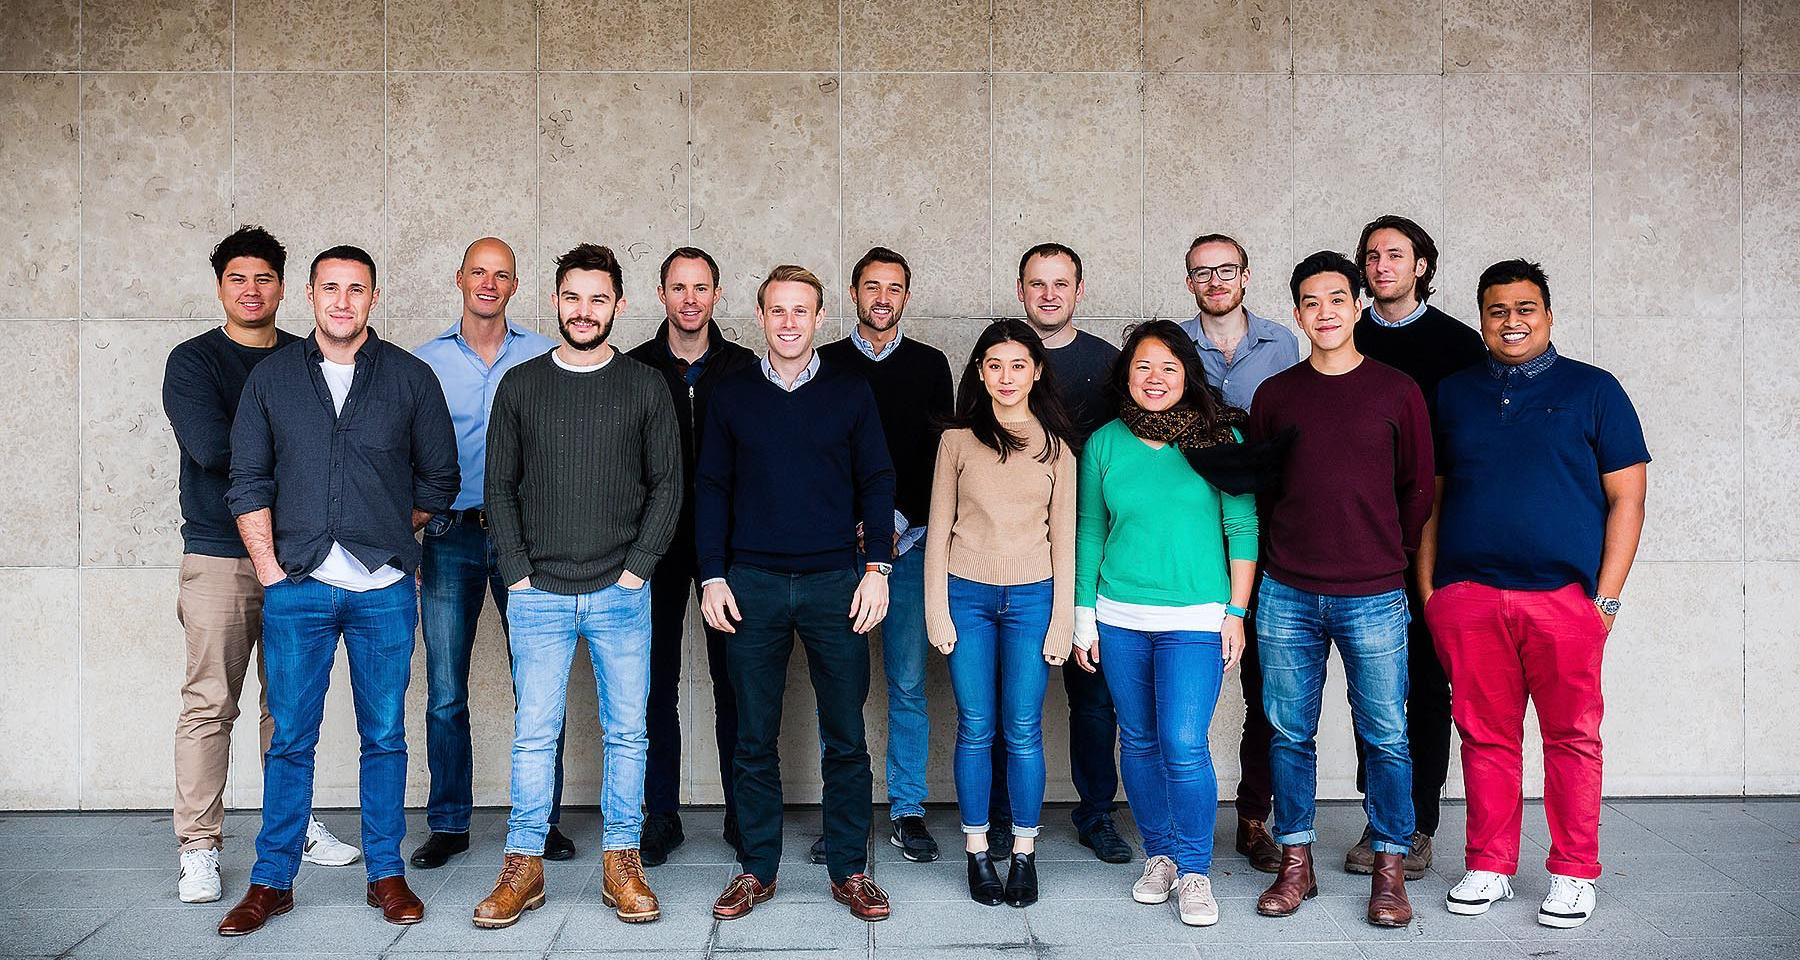 GuestReady raises $6M to help hosts on Airbnb and other services manage their property